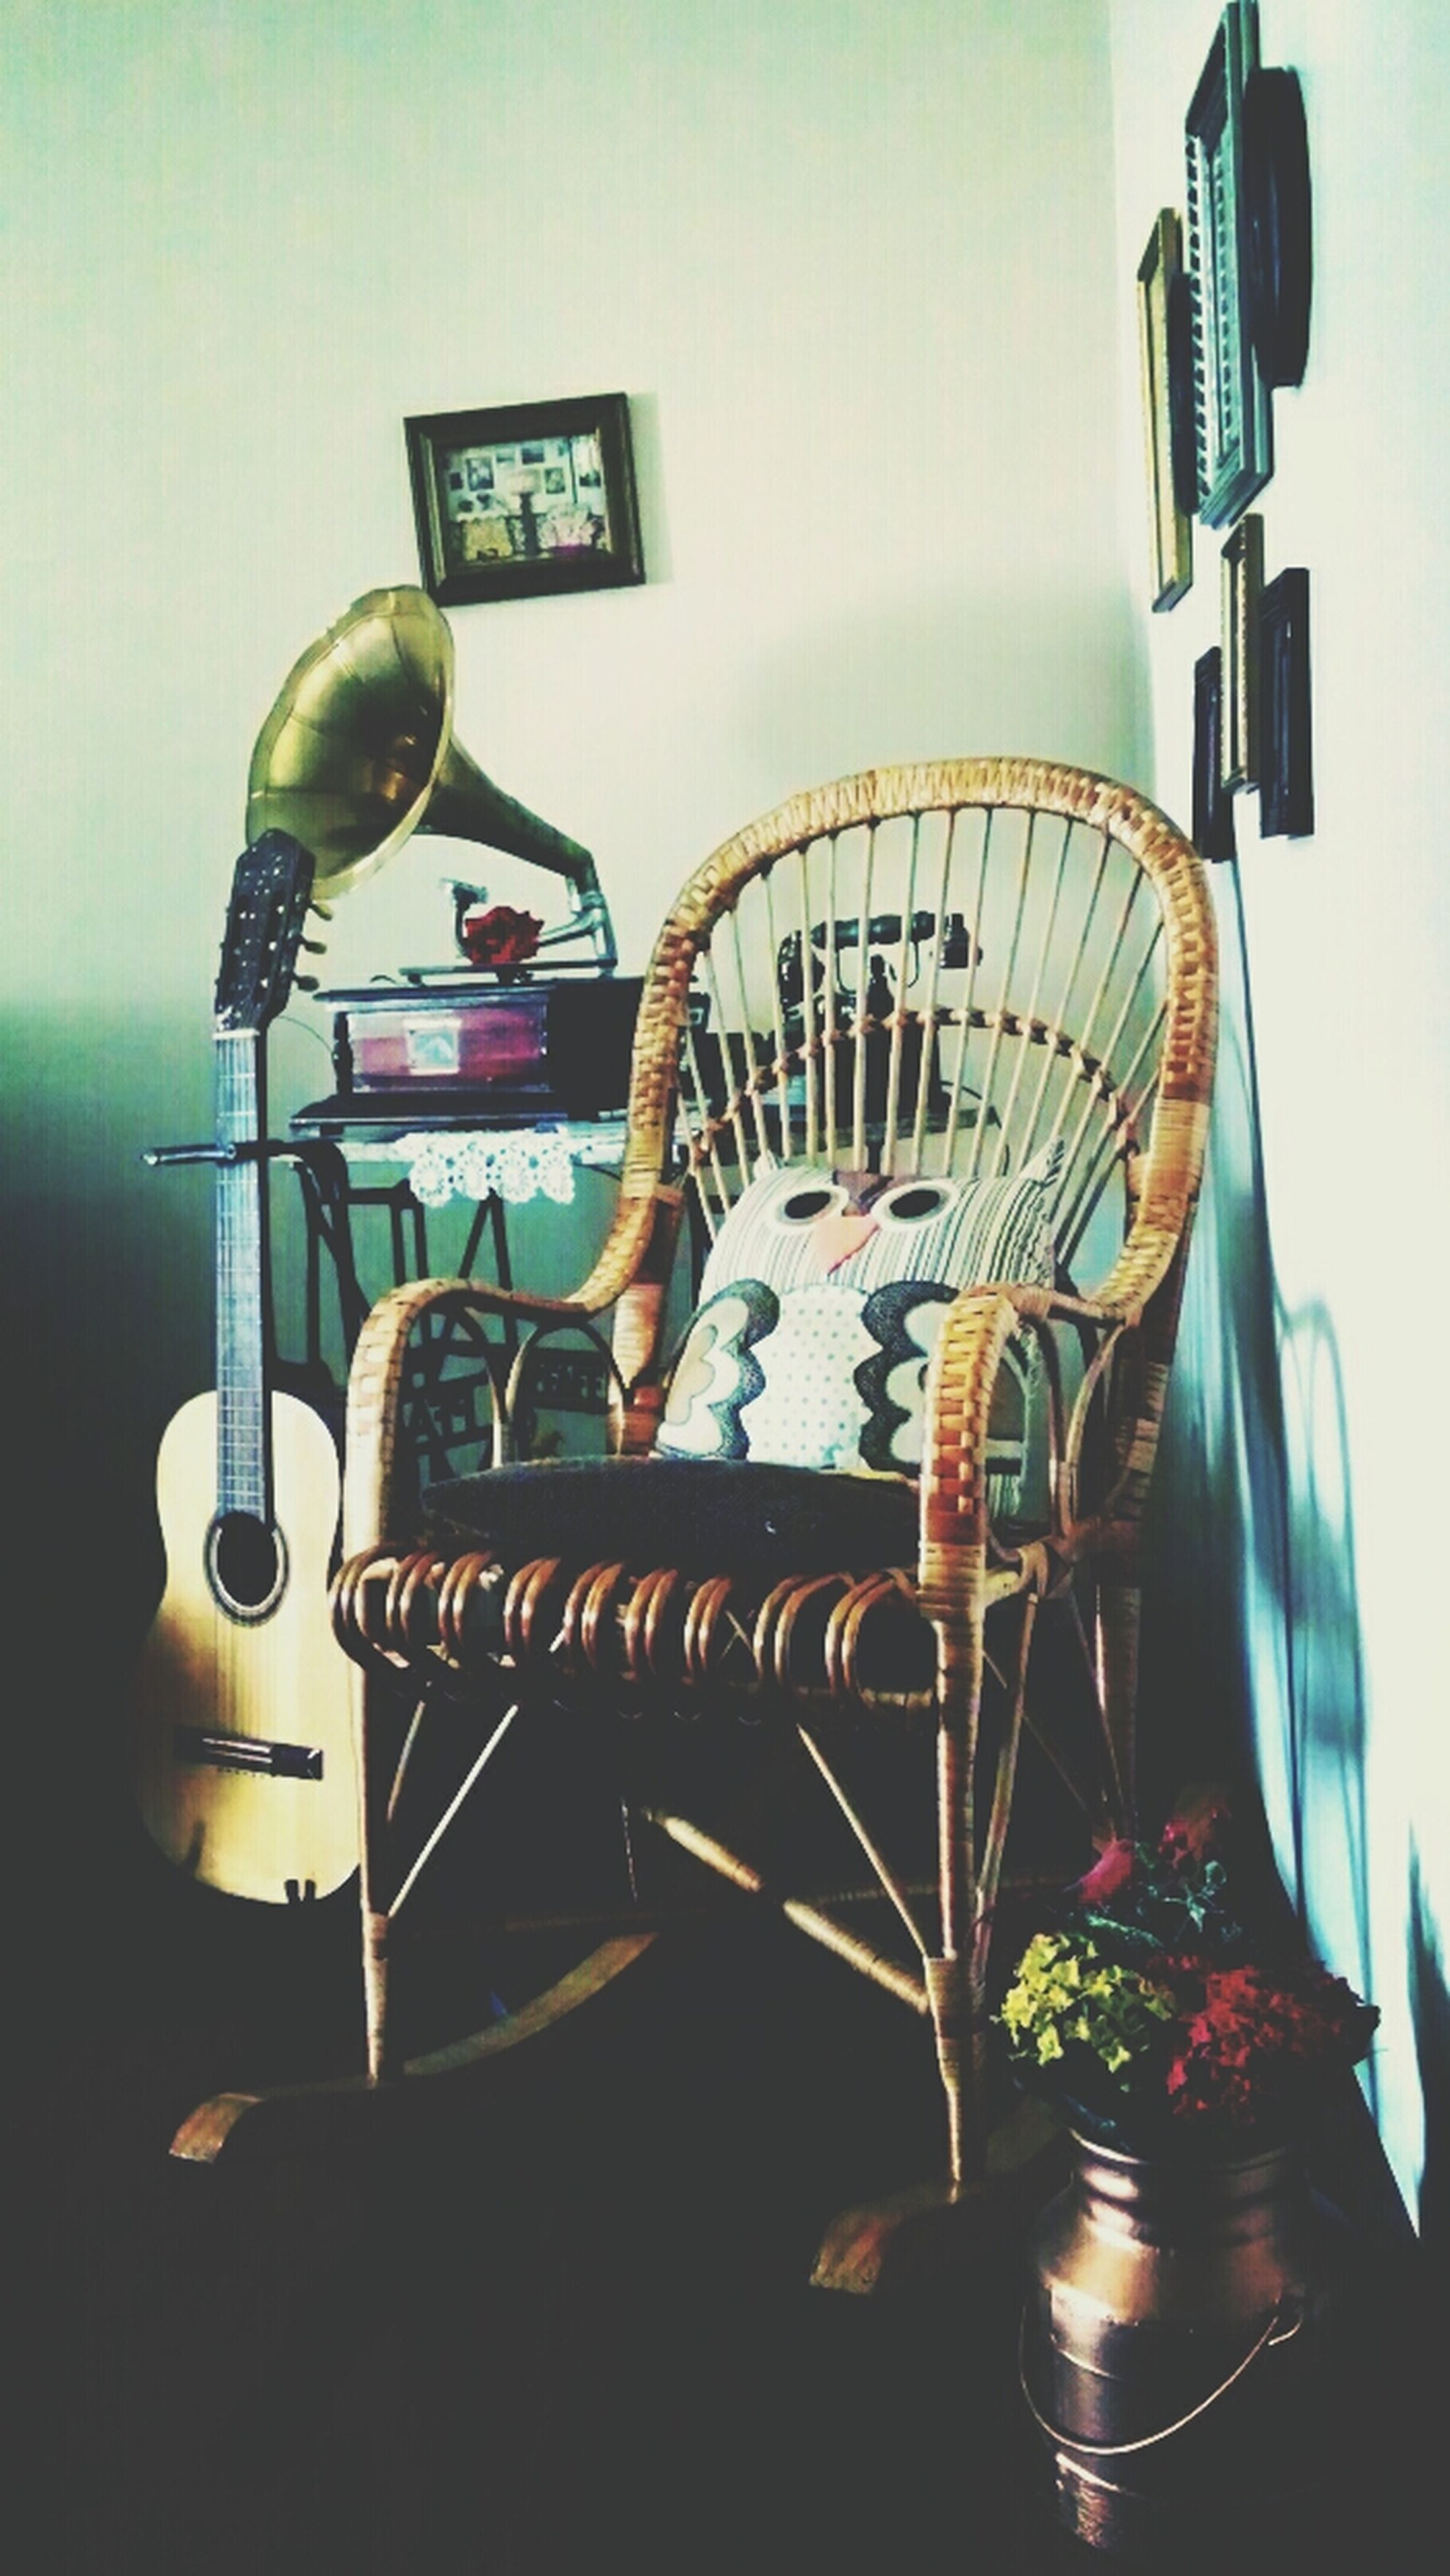 indoors, communication, technology, arts culture and entertainment, text, wall - building feature, chair, old-fashioned, built structure, home interior, reflection, architecture, lighting equipment, no people, western script, connection, hanging, music, musical instrument, retro styled